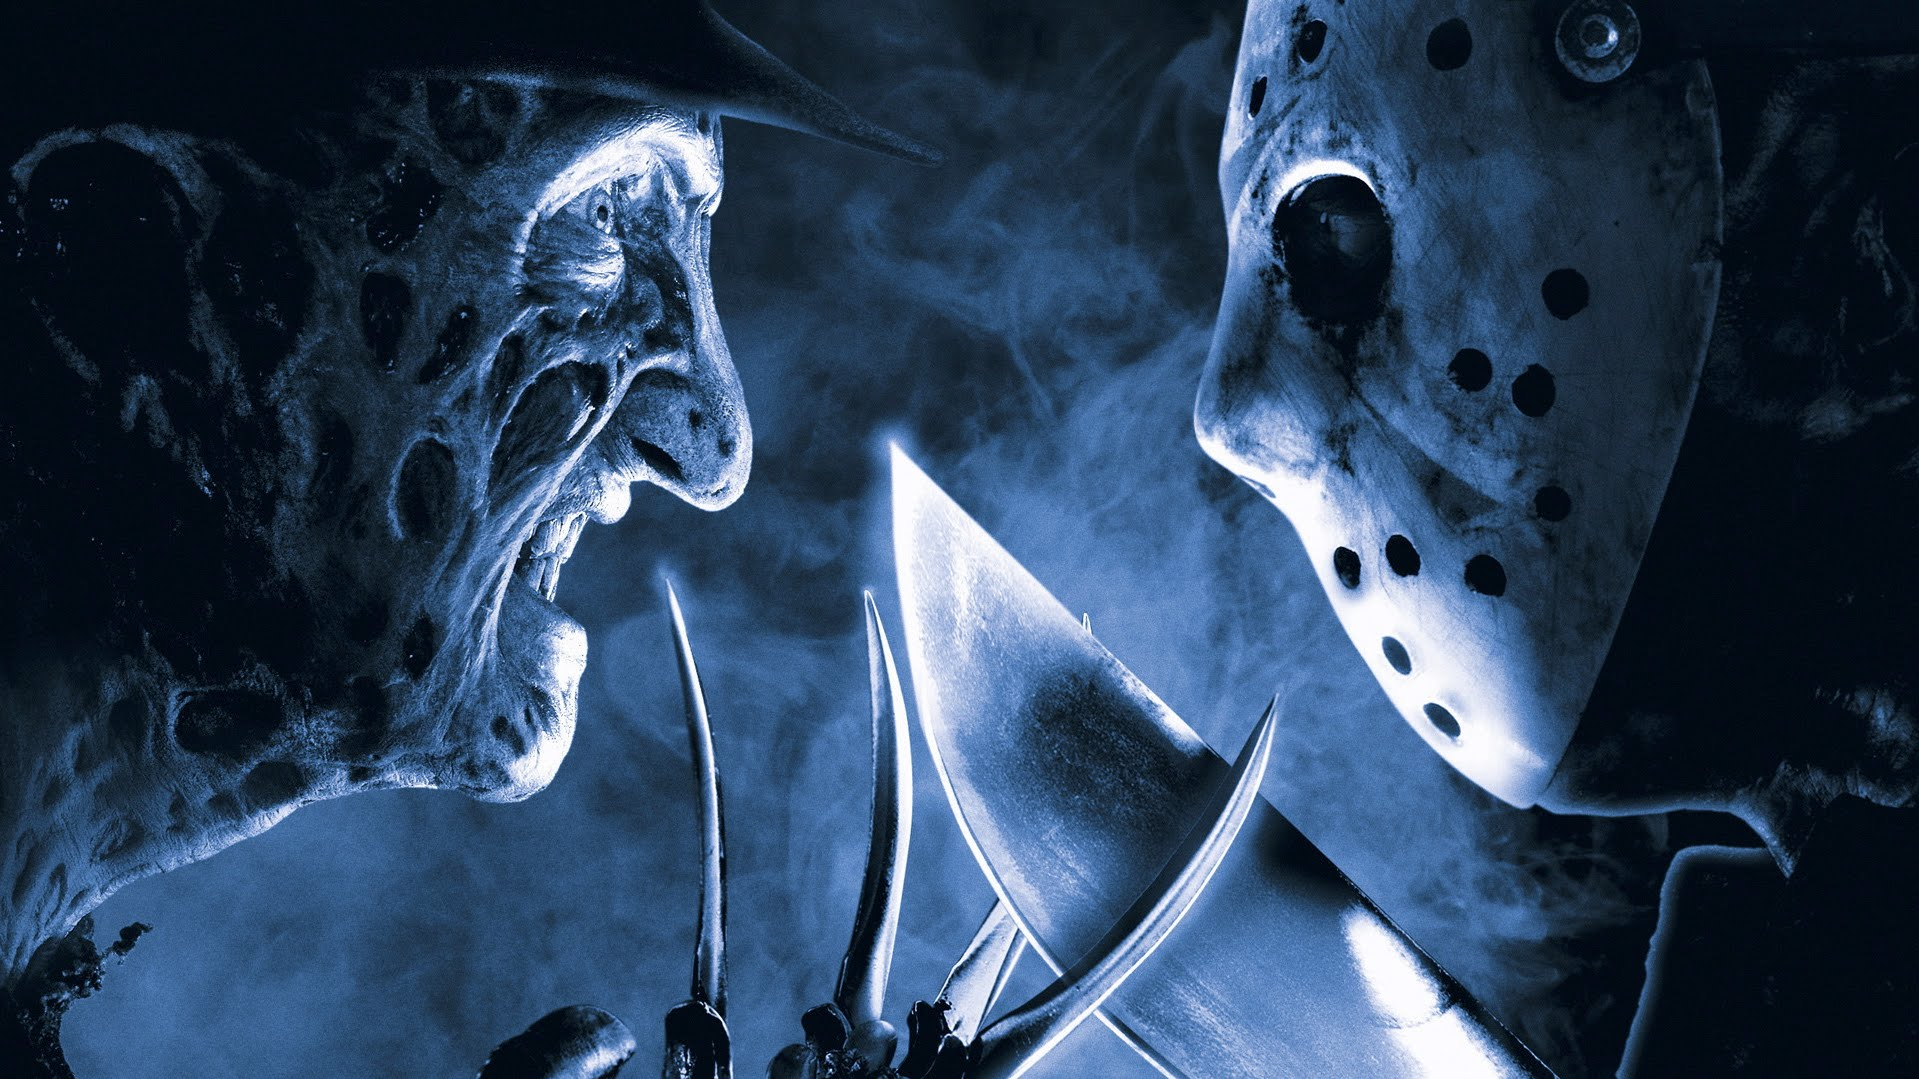 Jason With Friday The 13th Creator Sean S 374648 Hd Wallpaper